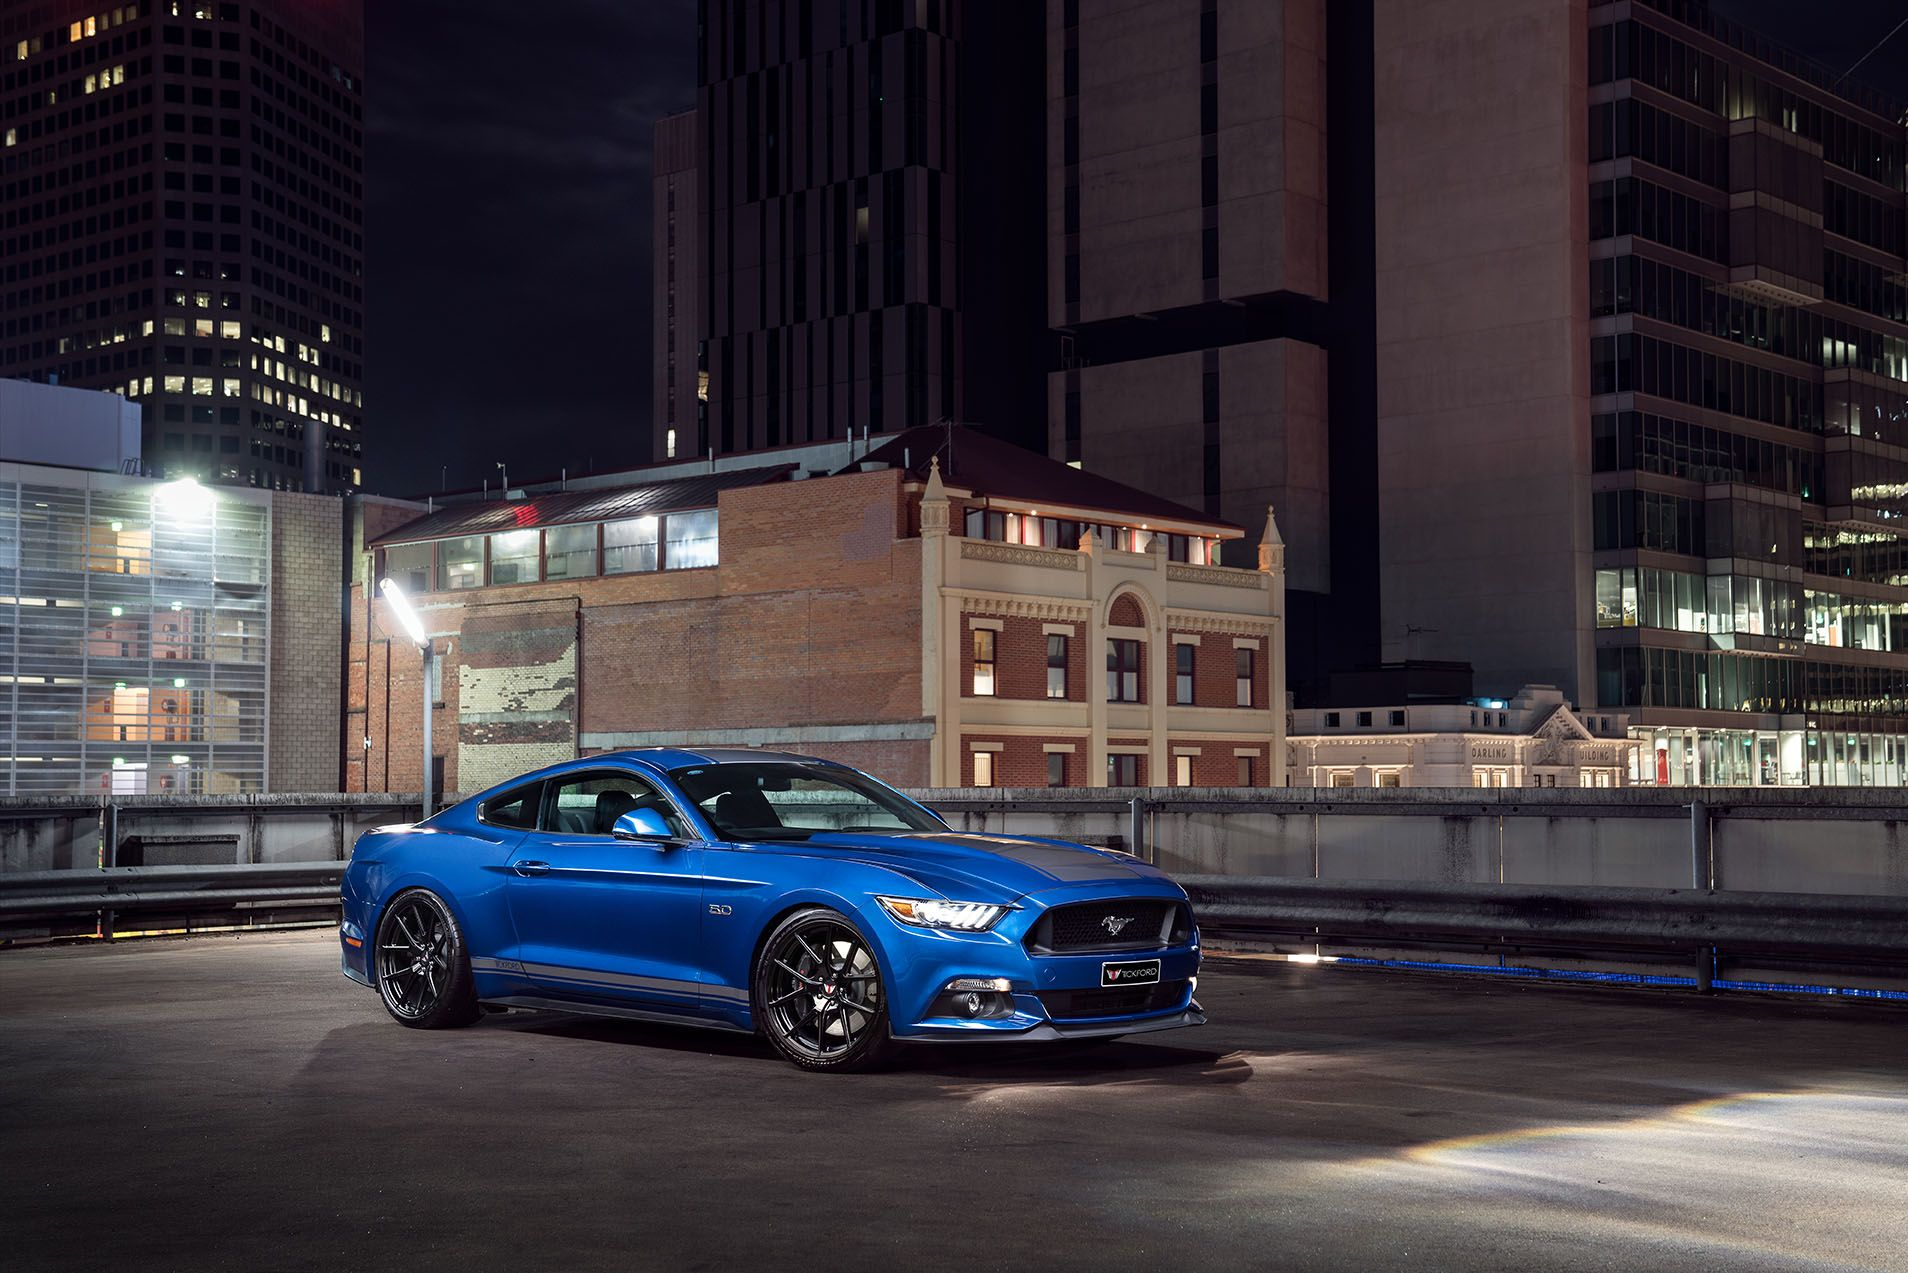 Mustang Modifications Melbourne Di 2020 Indonesia